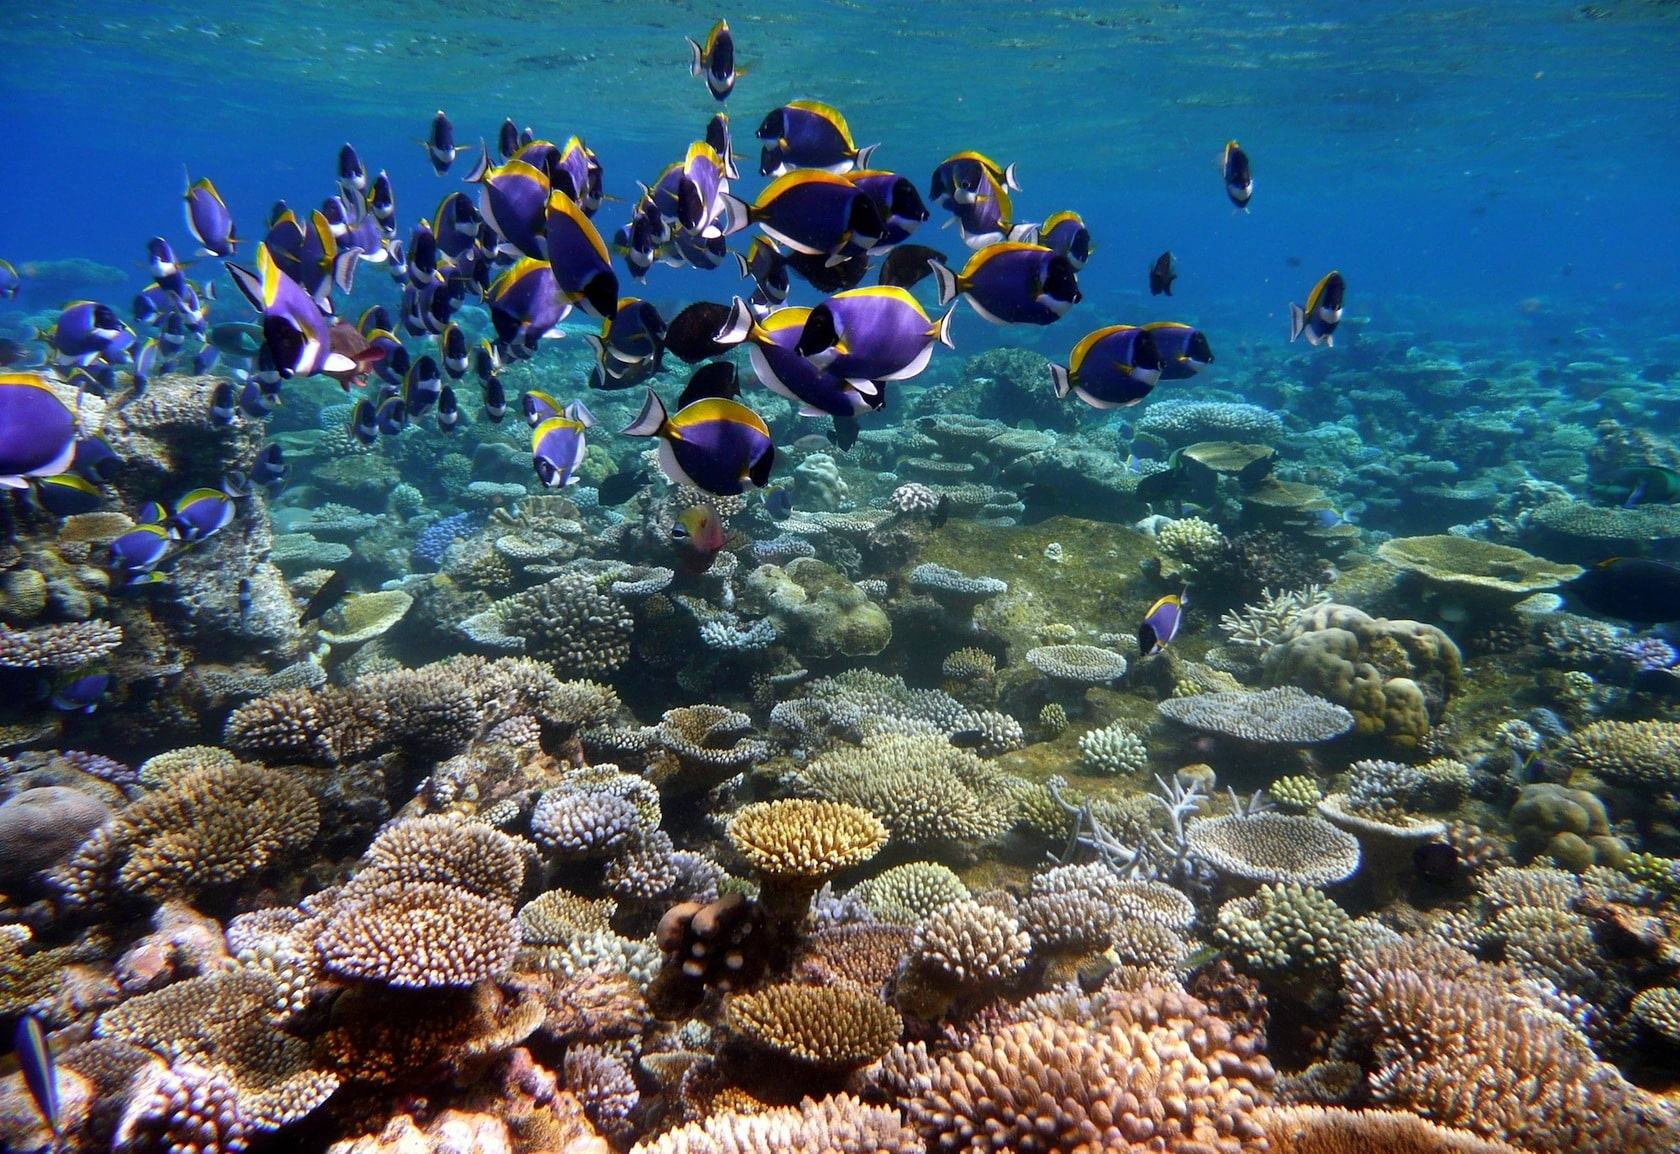 UPDATE: Coral bleaching around Thailand waters | The Thaiger